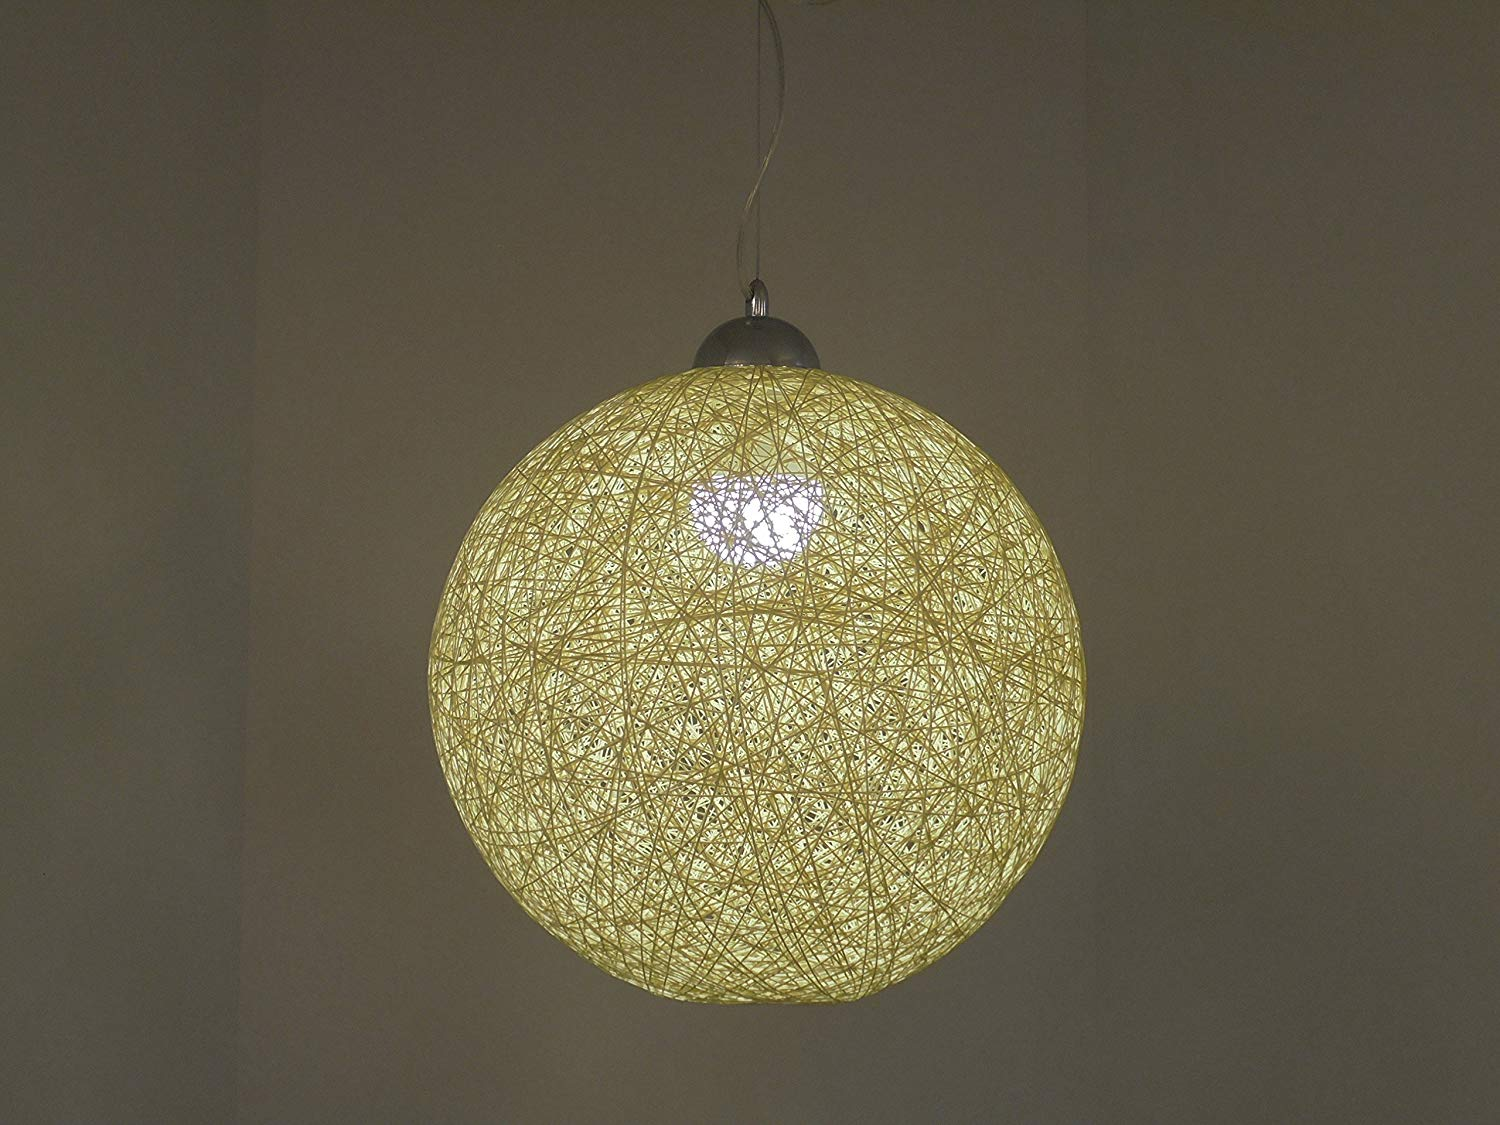 suspension-boule pour lampe en ficelle